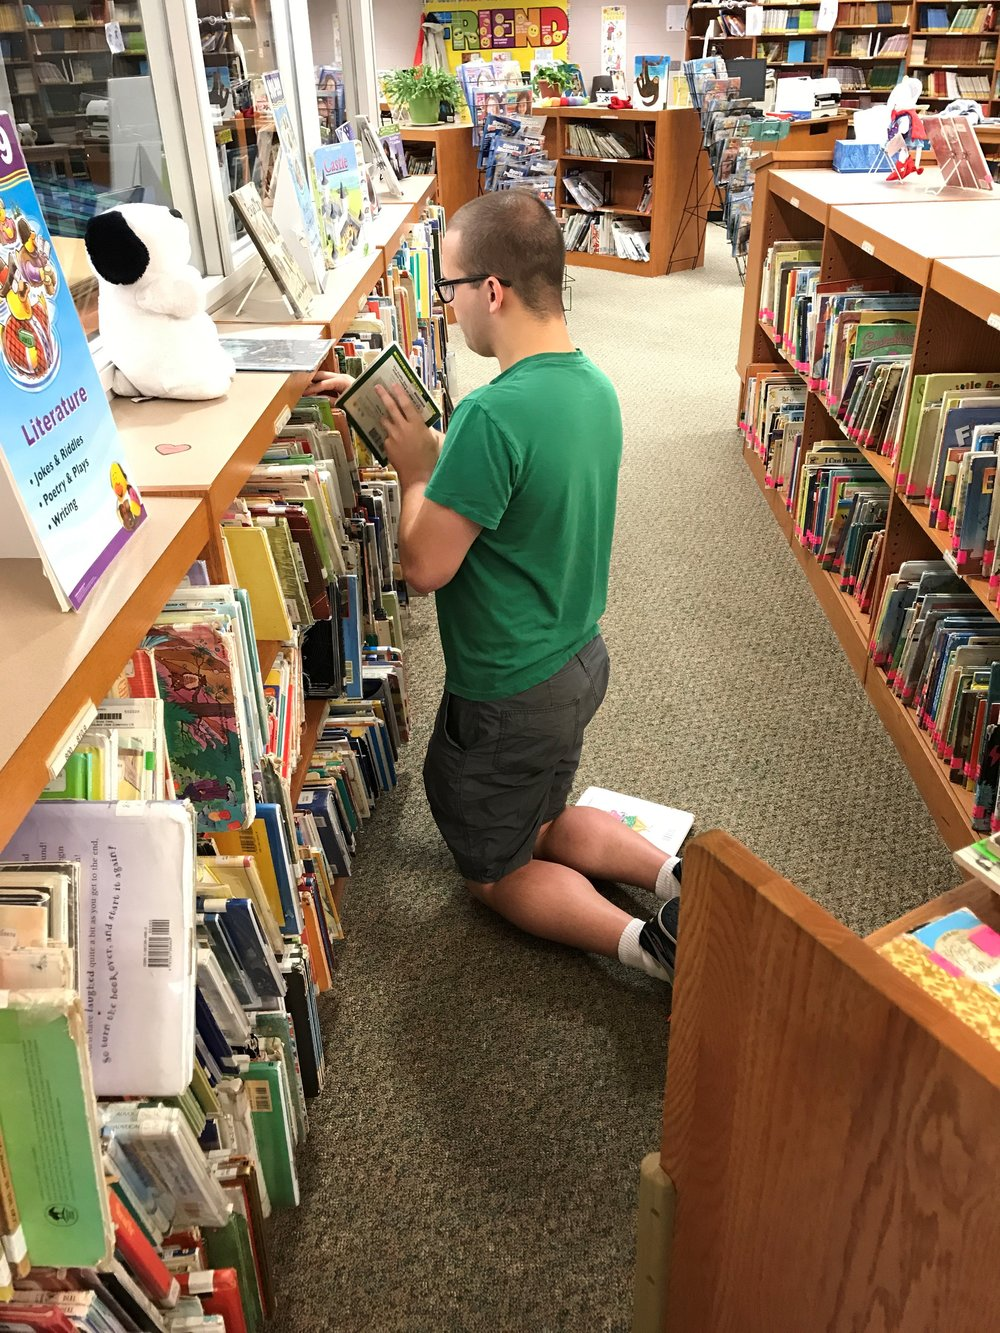 Trevor volunteering at the Library